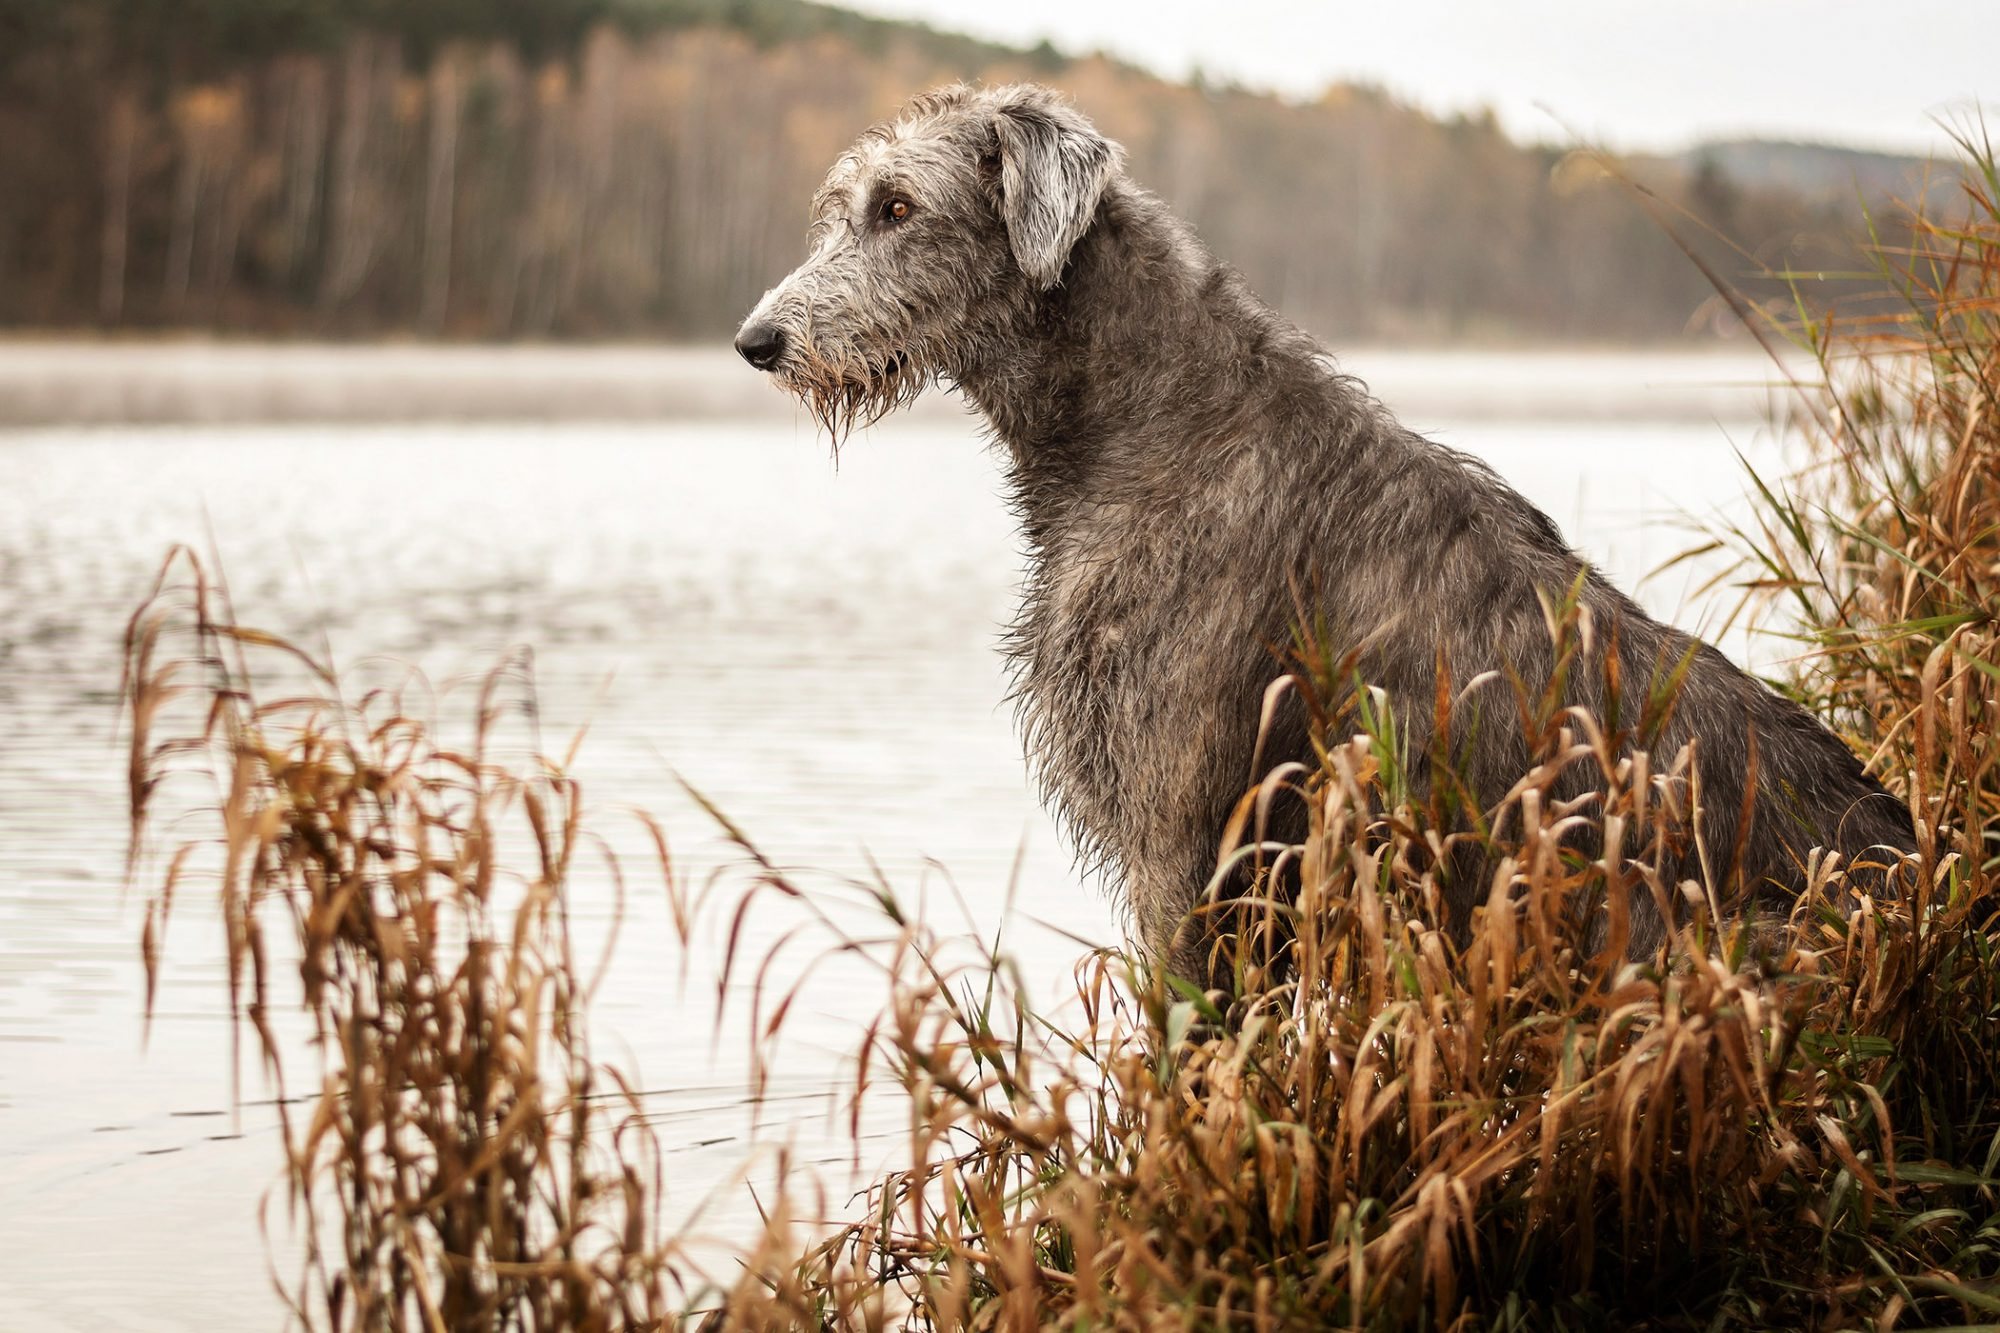 irish woflhound sitting on bank of river